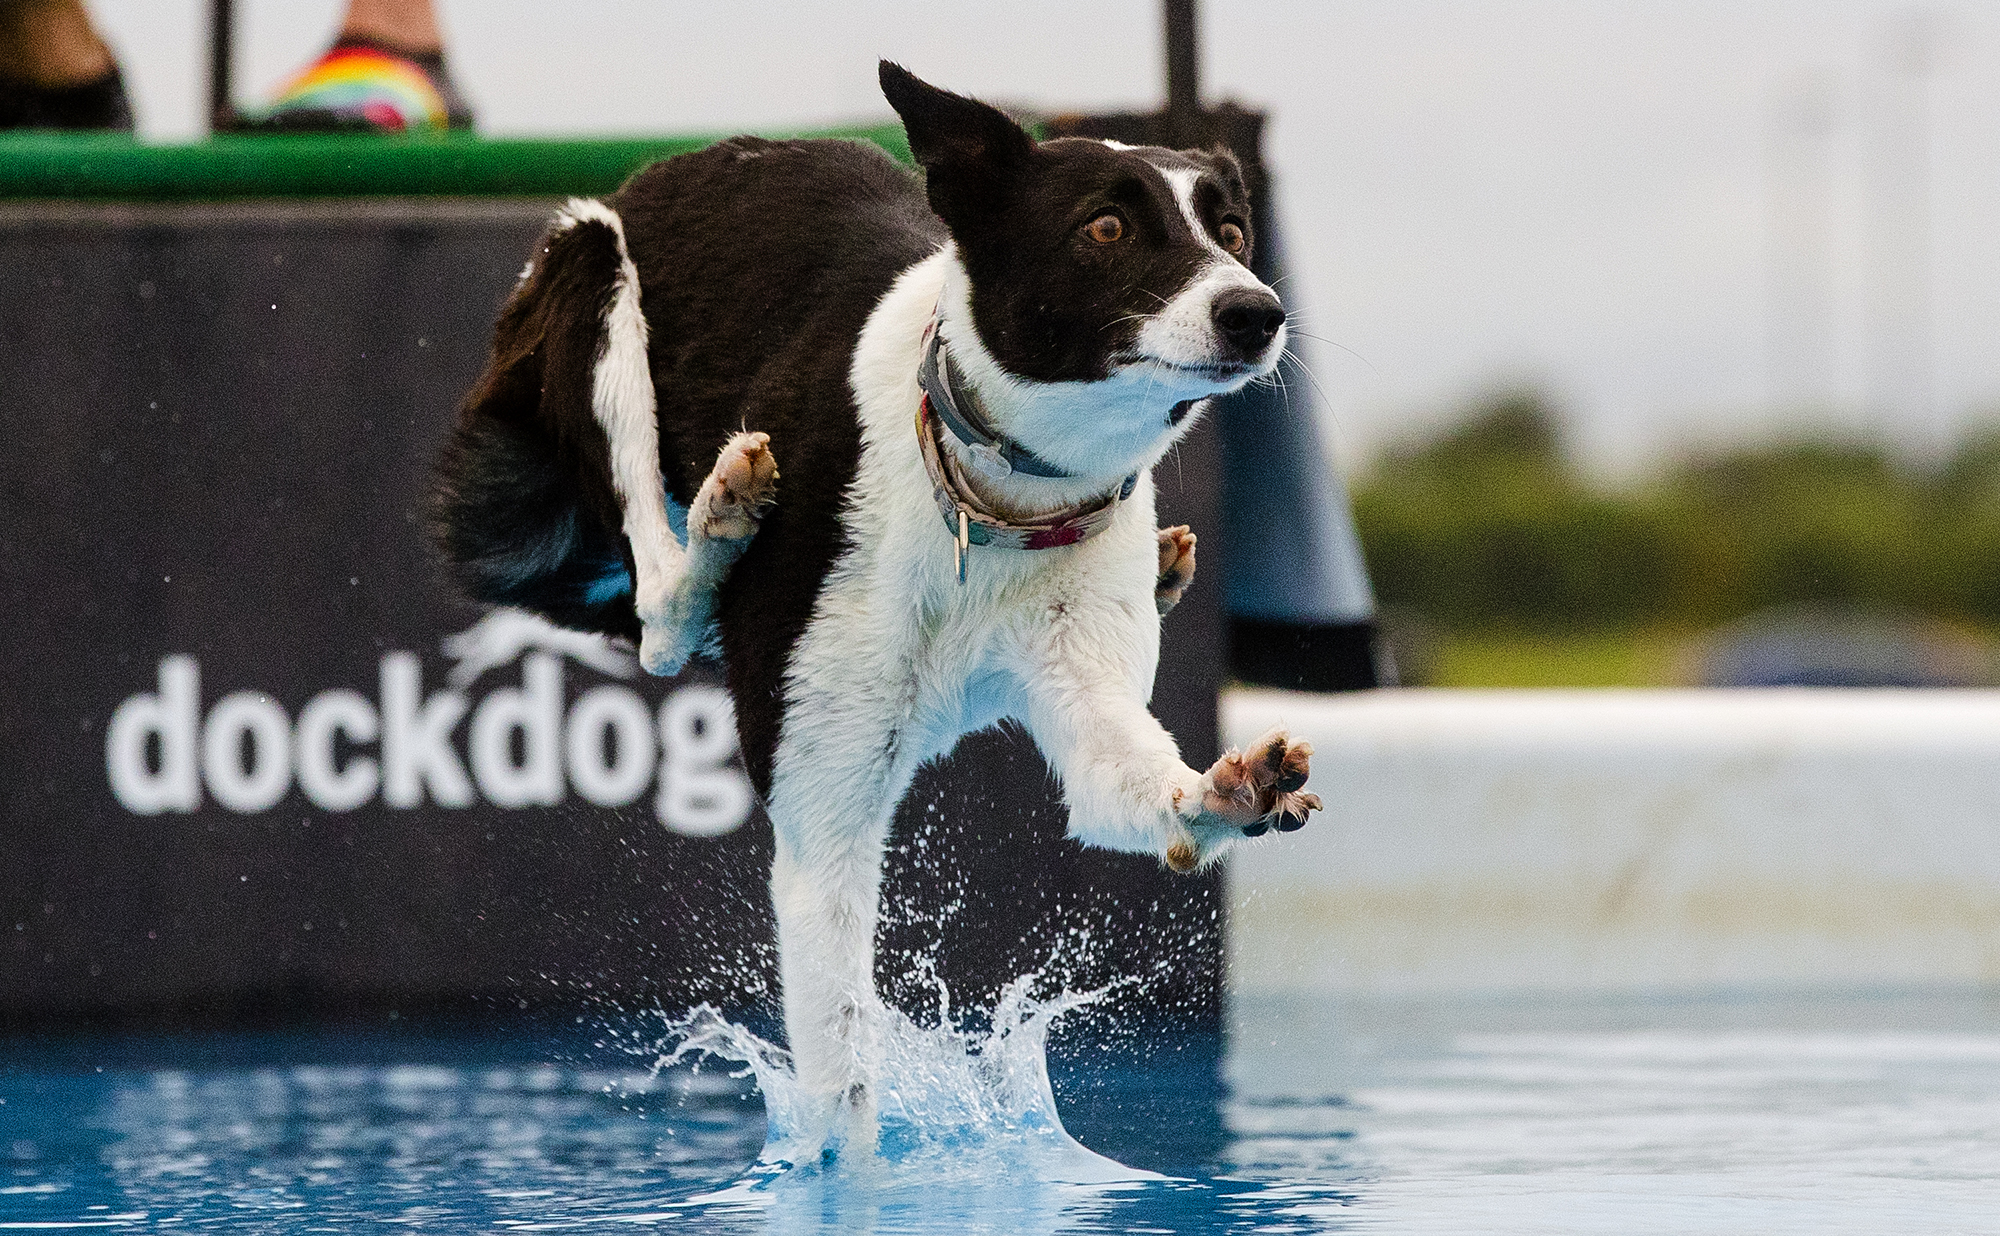 Le Cambell's dog Kiwi touches down with one foot as she competes during the first round of the DockDogs competition at the Scheels Hunting Expo Friday, Aug. 24, 2018. The competition continues through Sunday afternoon with multiple rounds of jumping each day. [Ted Schurter/The State Journal-Register]